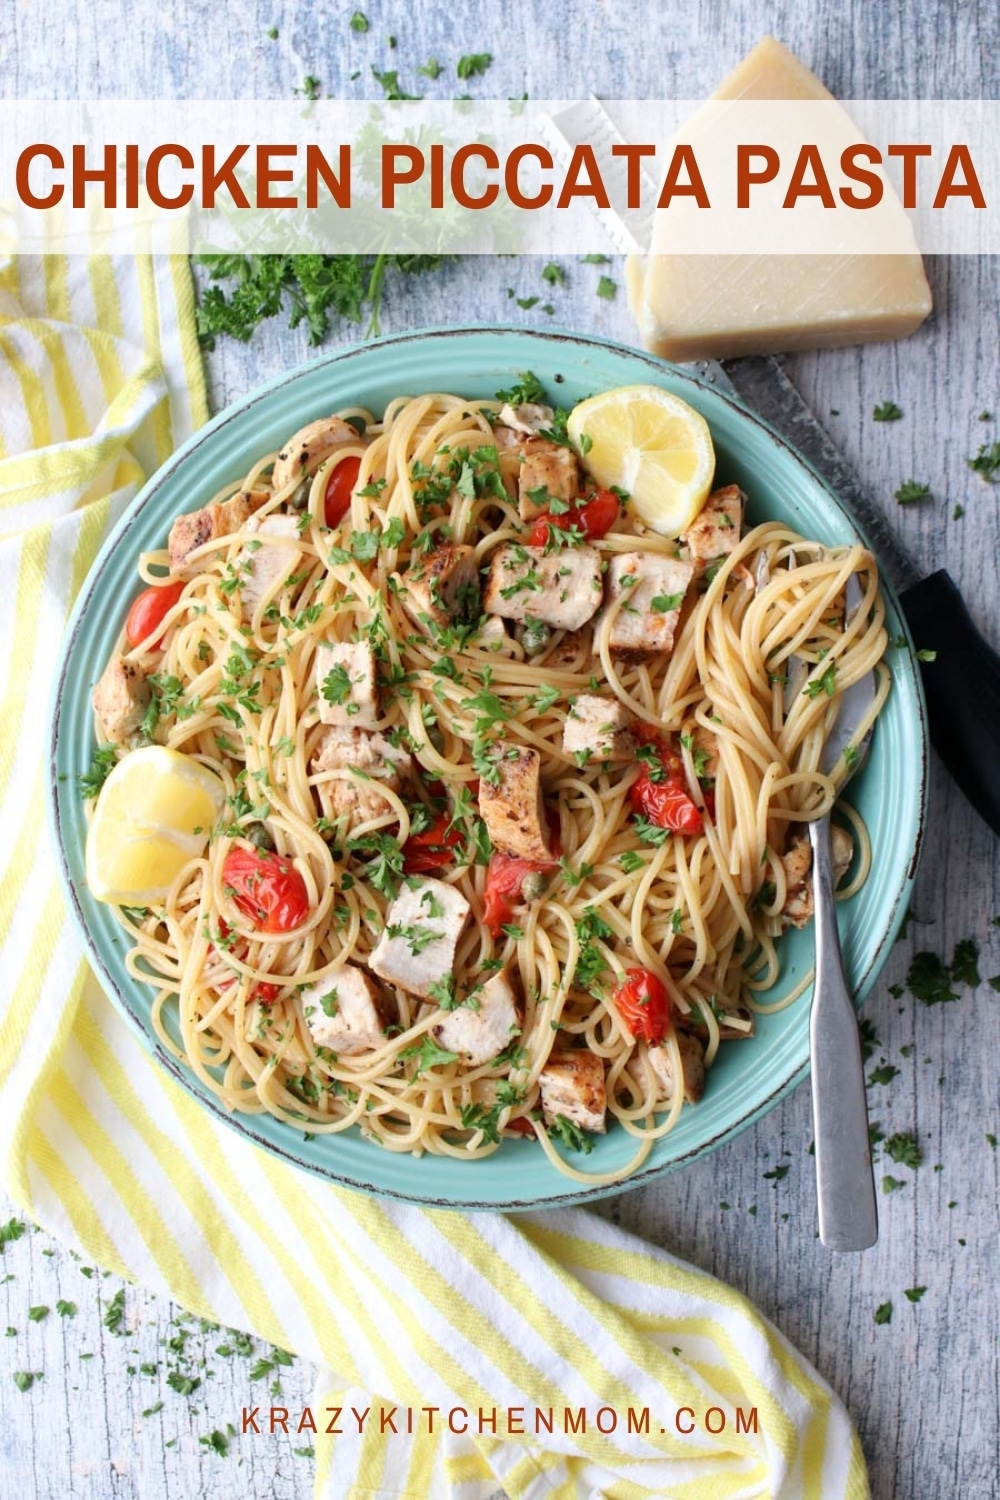 Dinner in 30 minutes! Buttery, lemony chicken piccata pasta is perfect for any weeknight with the family. Fast and delicious. via @krazykitchenmom